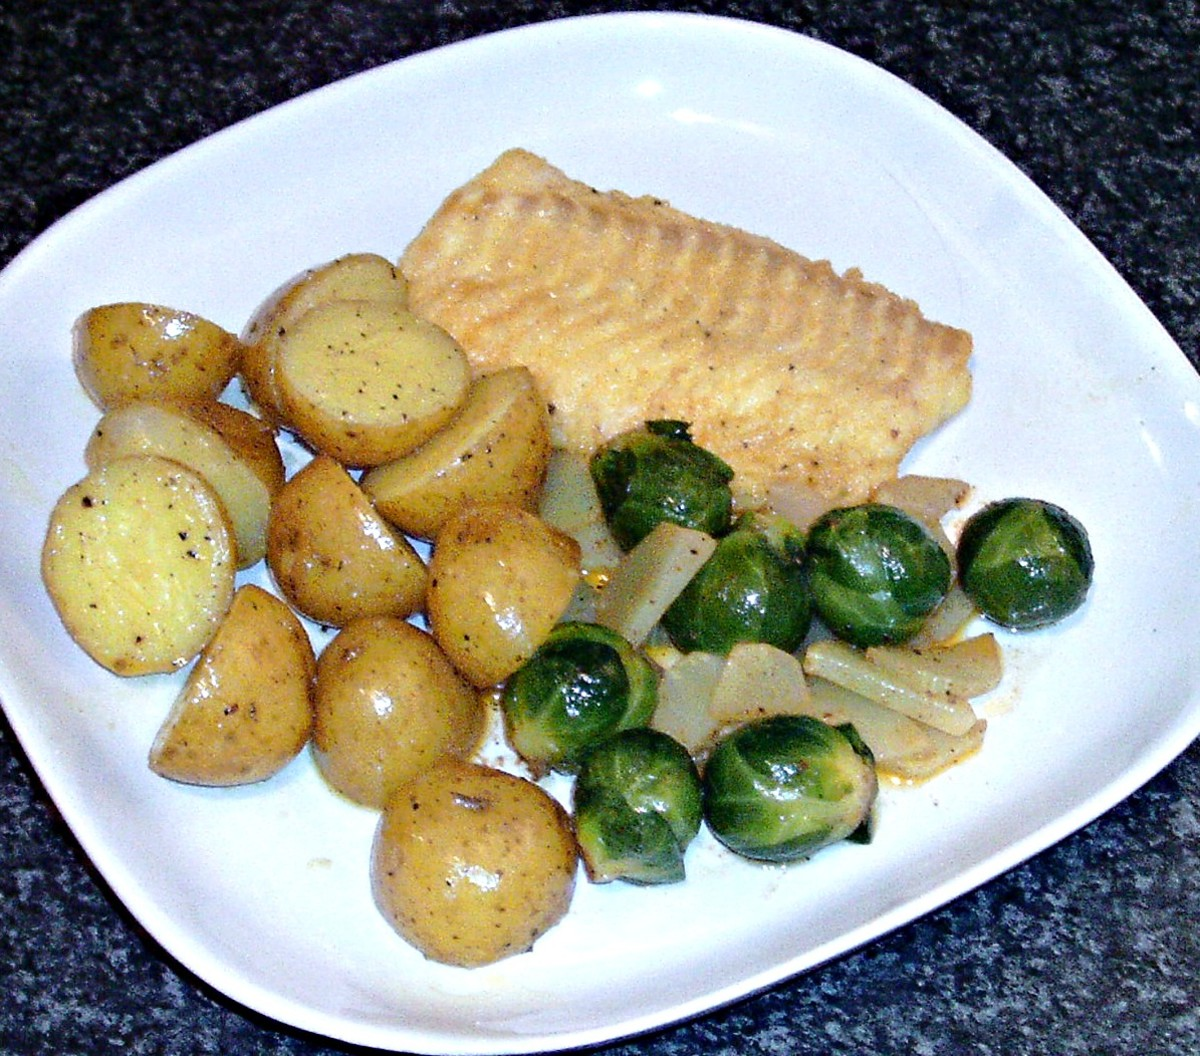 Chilli spiced sauteed celtuce and Brussels sprouts with turmeric spiced cod and potatoes